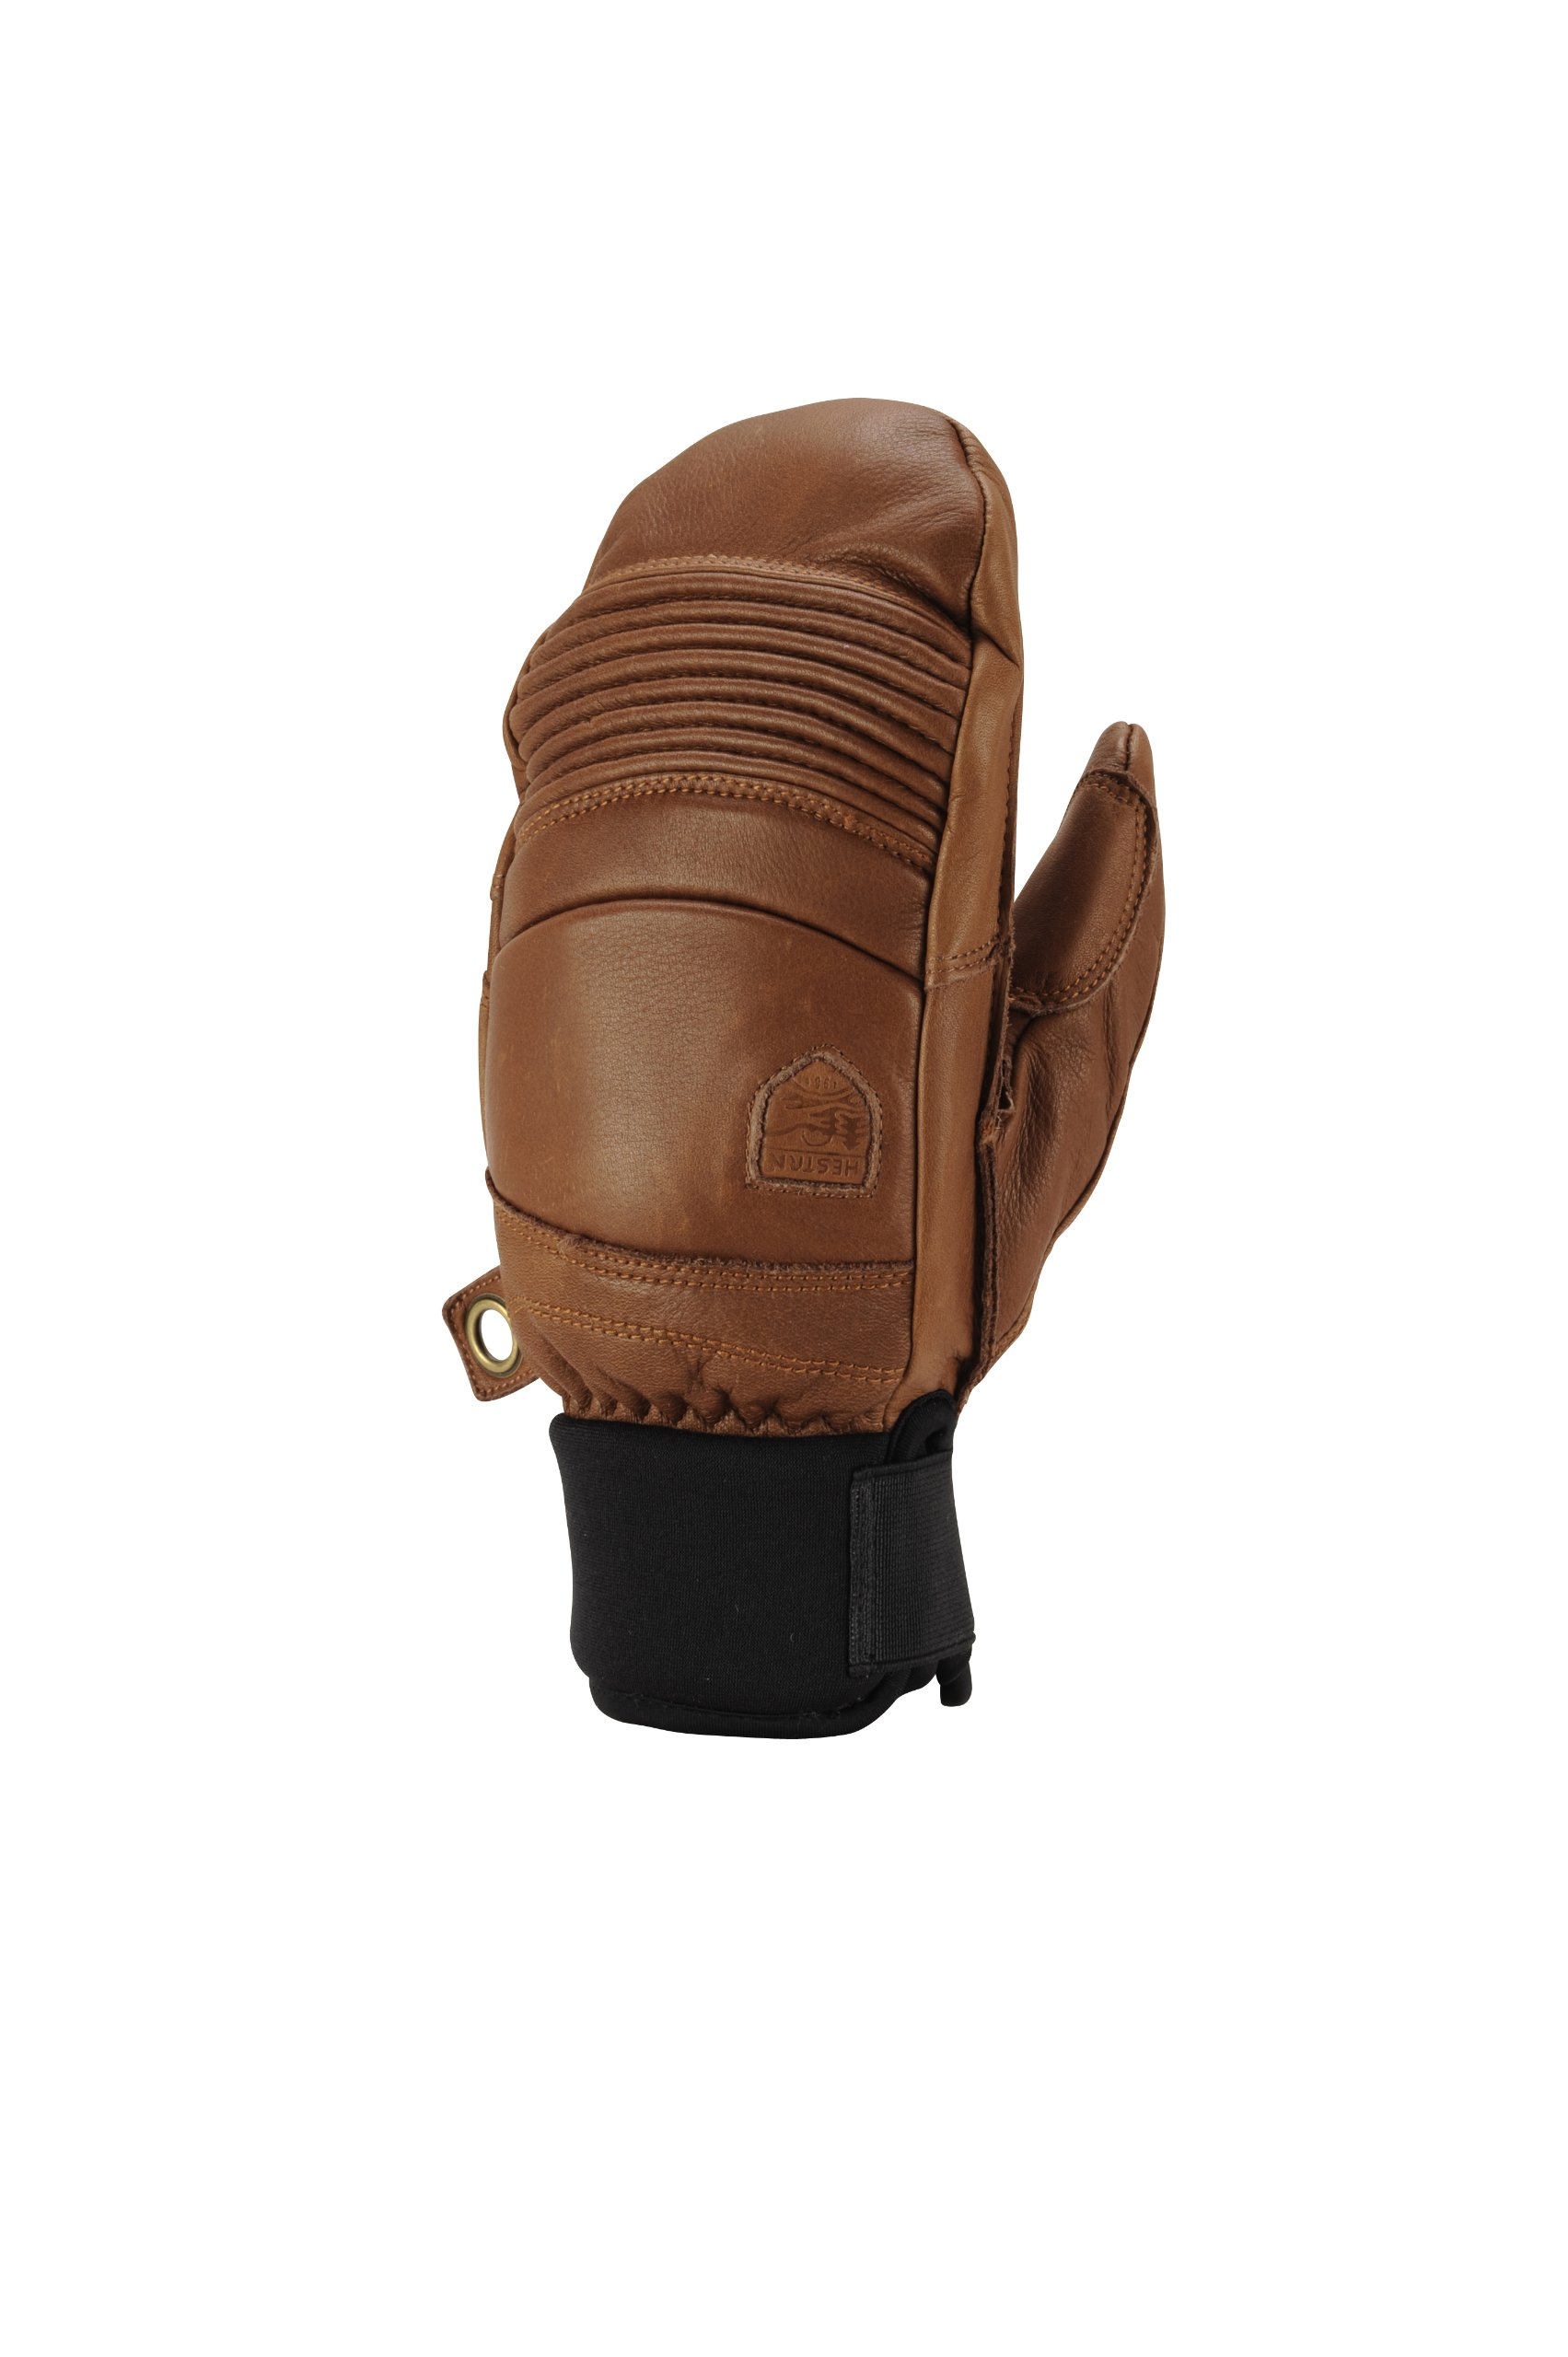 Hestra Leather Fall Line Short Ski Mitten,Brown,9 by Hestra